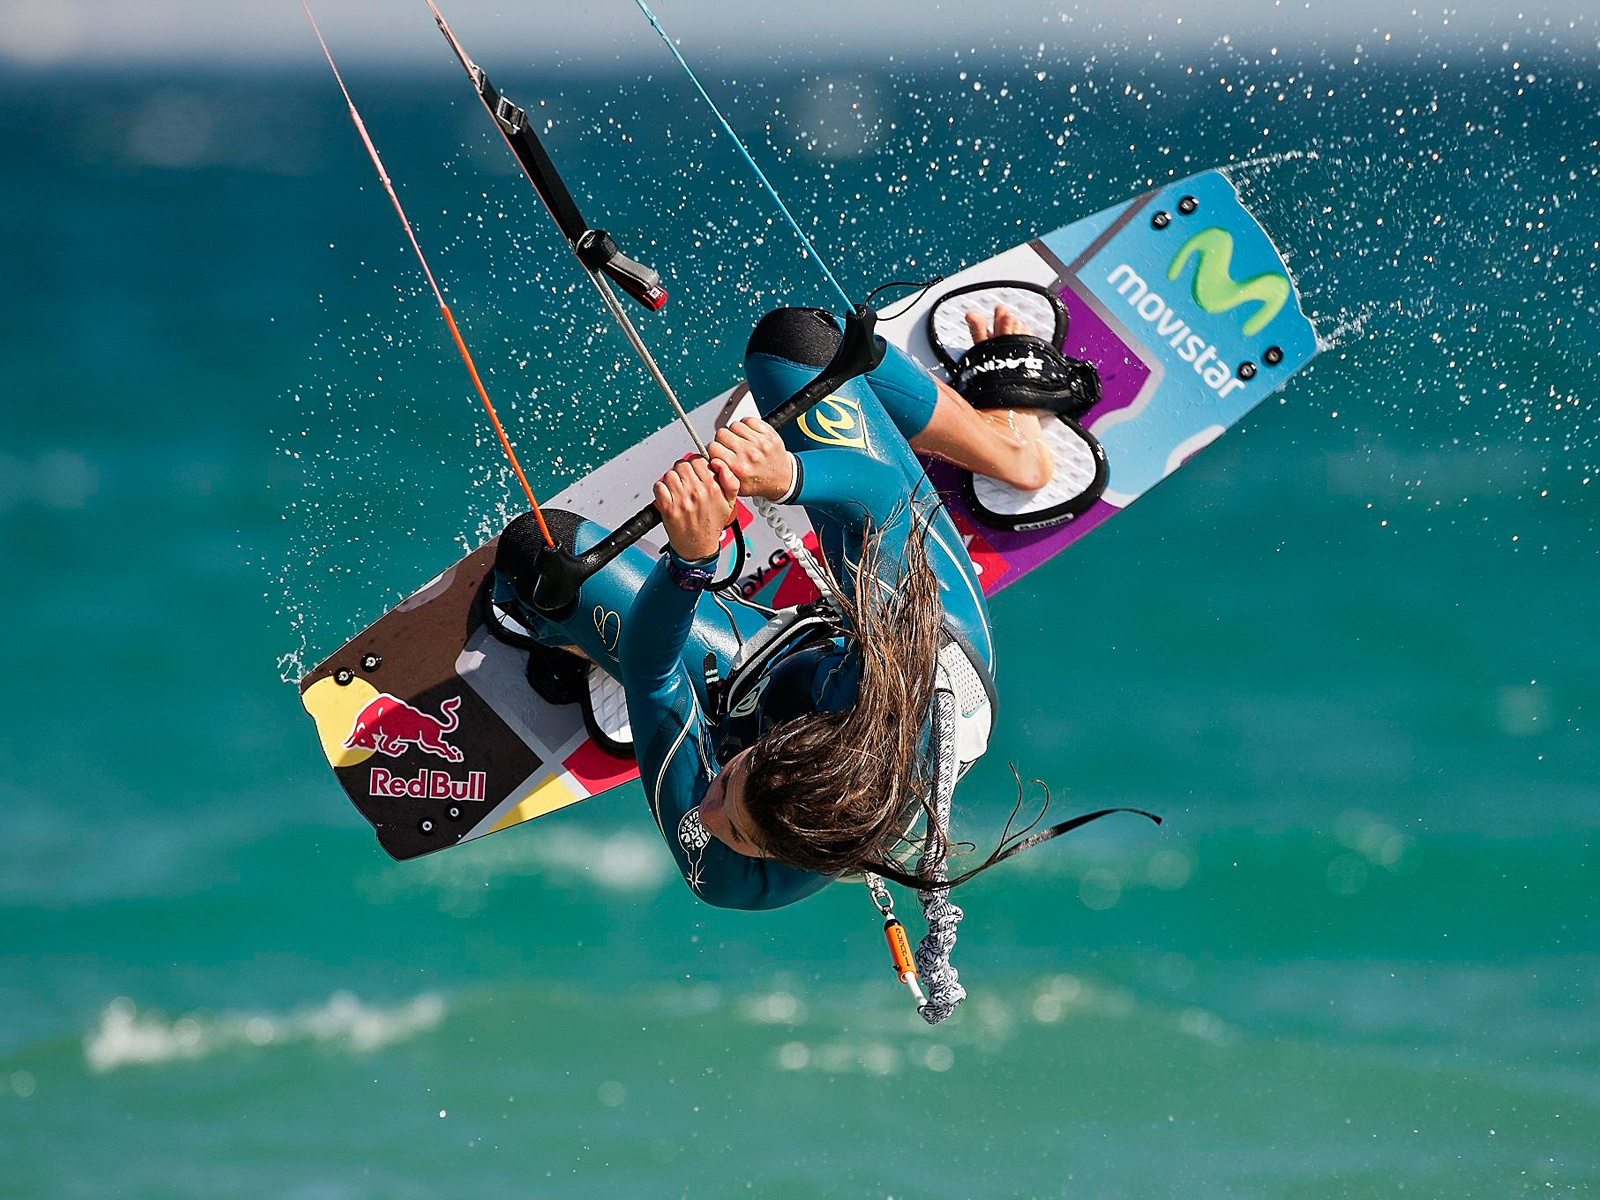 kitesurf wallpaper image - Gisela Pulido giving it all during contest - in resolution: Standard 4:3 1600 X 1200